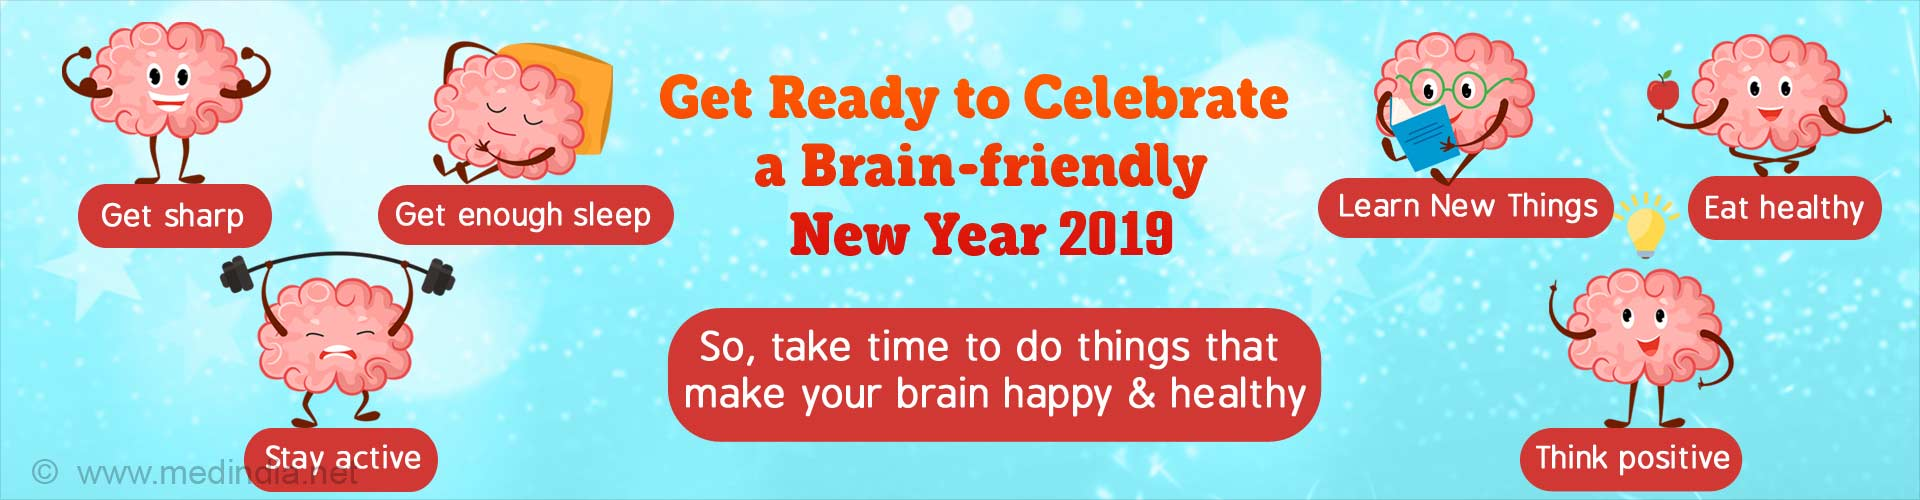 Get ready to celebrate a brain-friendly New Year 2019. Get sharp, get enough sleep, stay active, learn new things, eat healthy and think positive. So, take time to do things that make your brain happy and healthy.